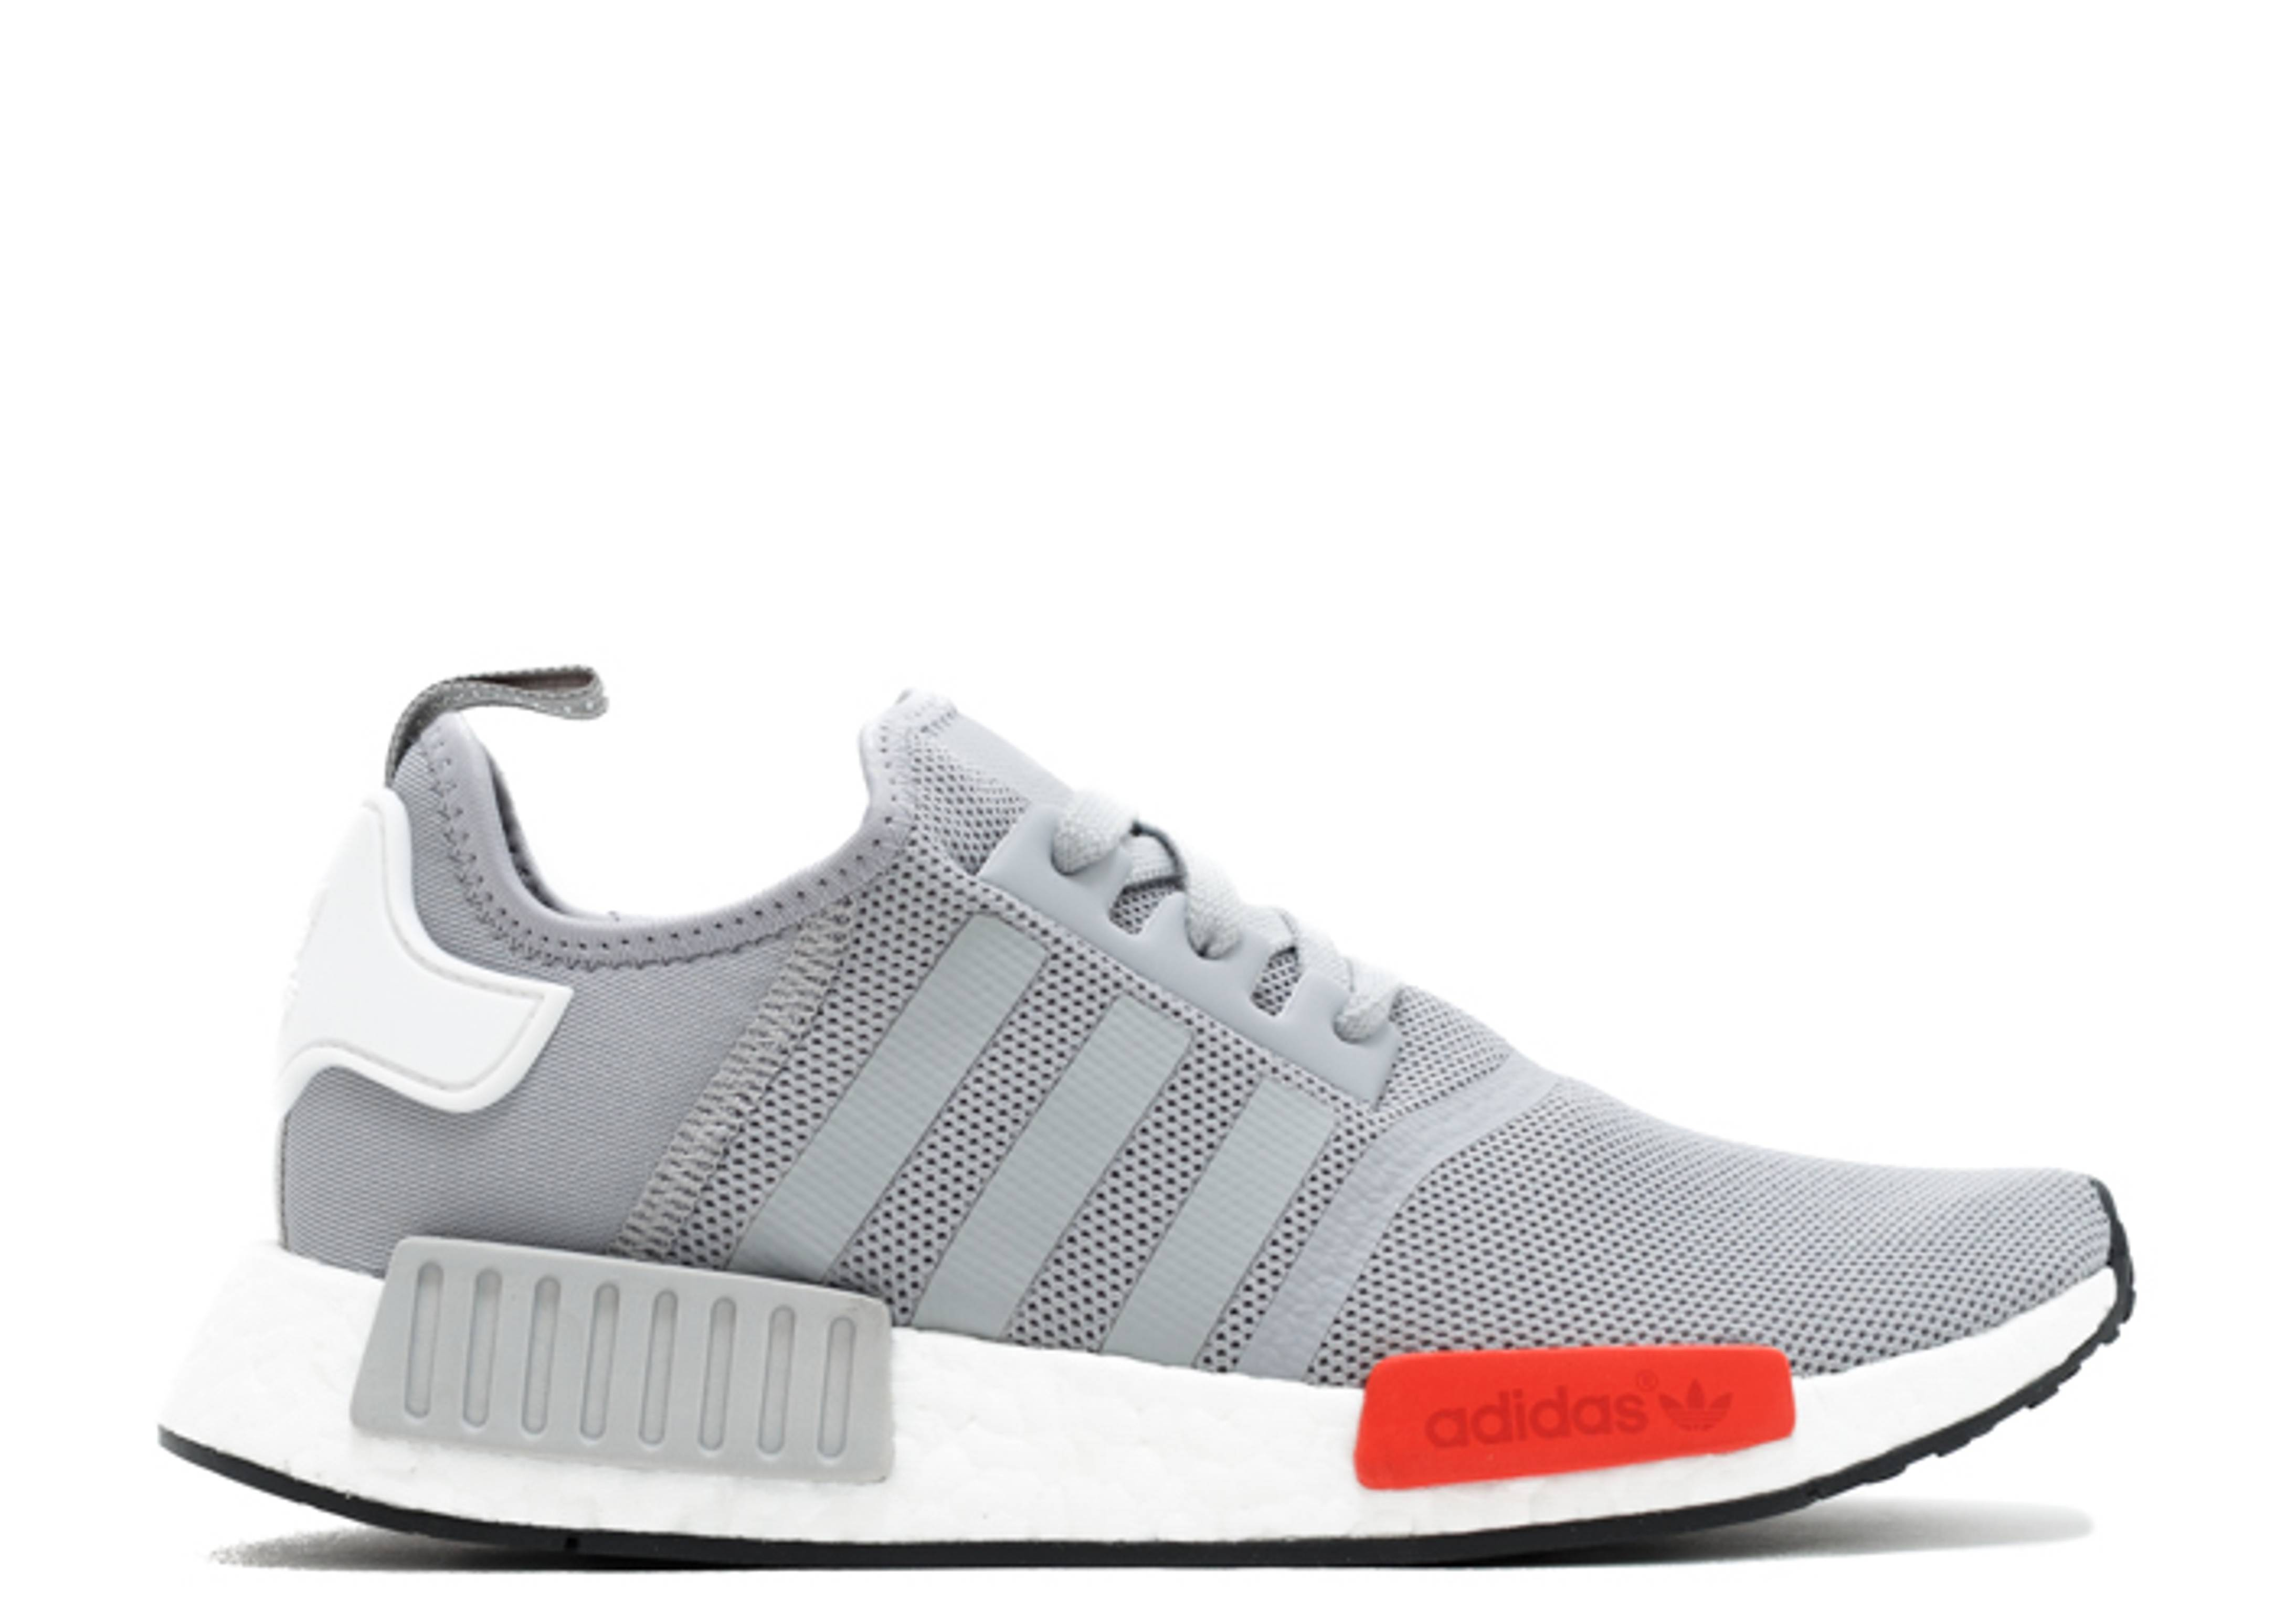 The Cheap Adidas NMD R2 was Previewed by White